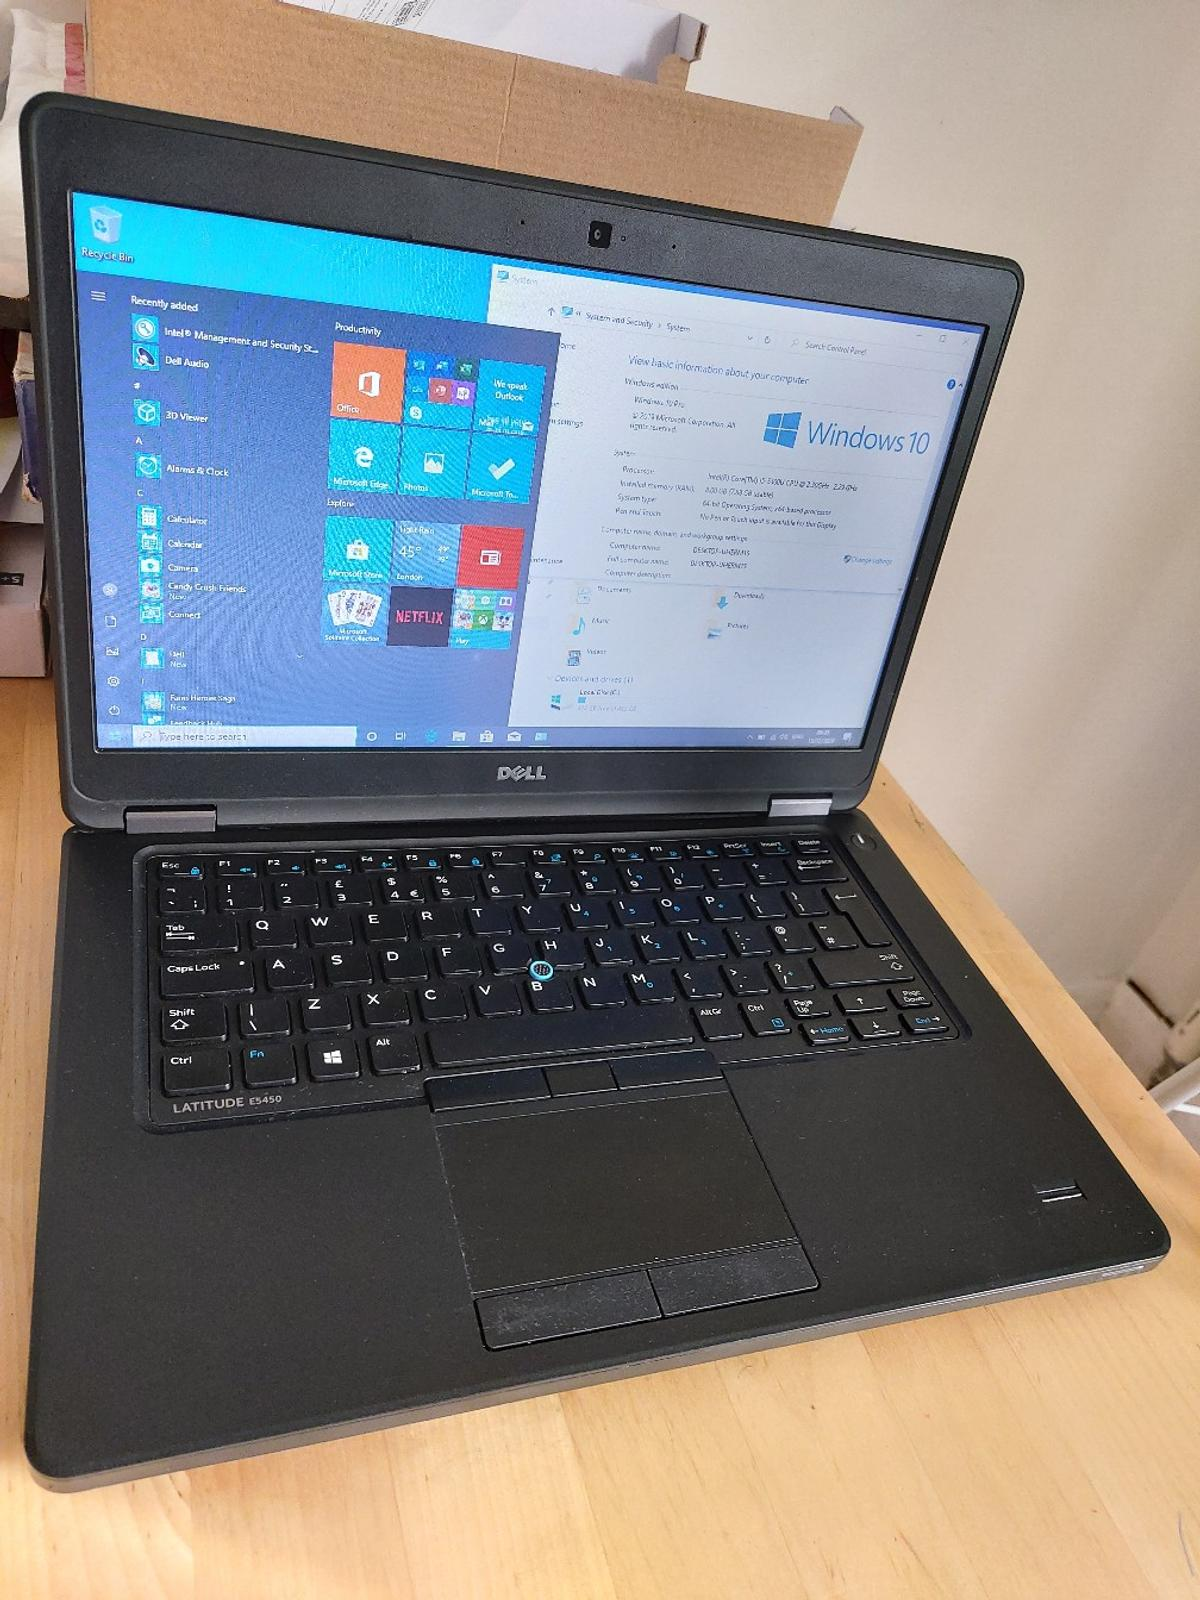 Dell Latitude E5450 14 inches Display Screen  Intel Core i5-5300U 2.30GHz 8GB DDR3 RAM Memory and 500GB HDD Storage Windows 10 Professional Laptop comes with charger and a generic box  Laptop is all in good working condition battery holds a good charge.  Any questions please feel free to ask u always respond immediately.